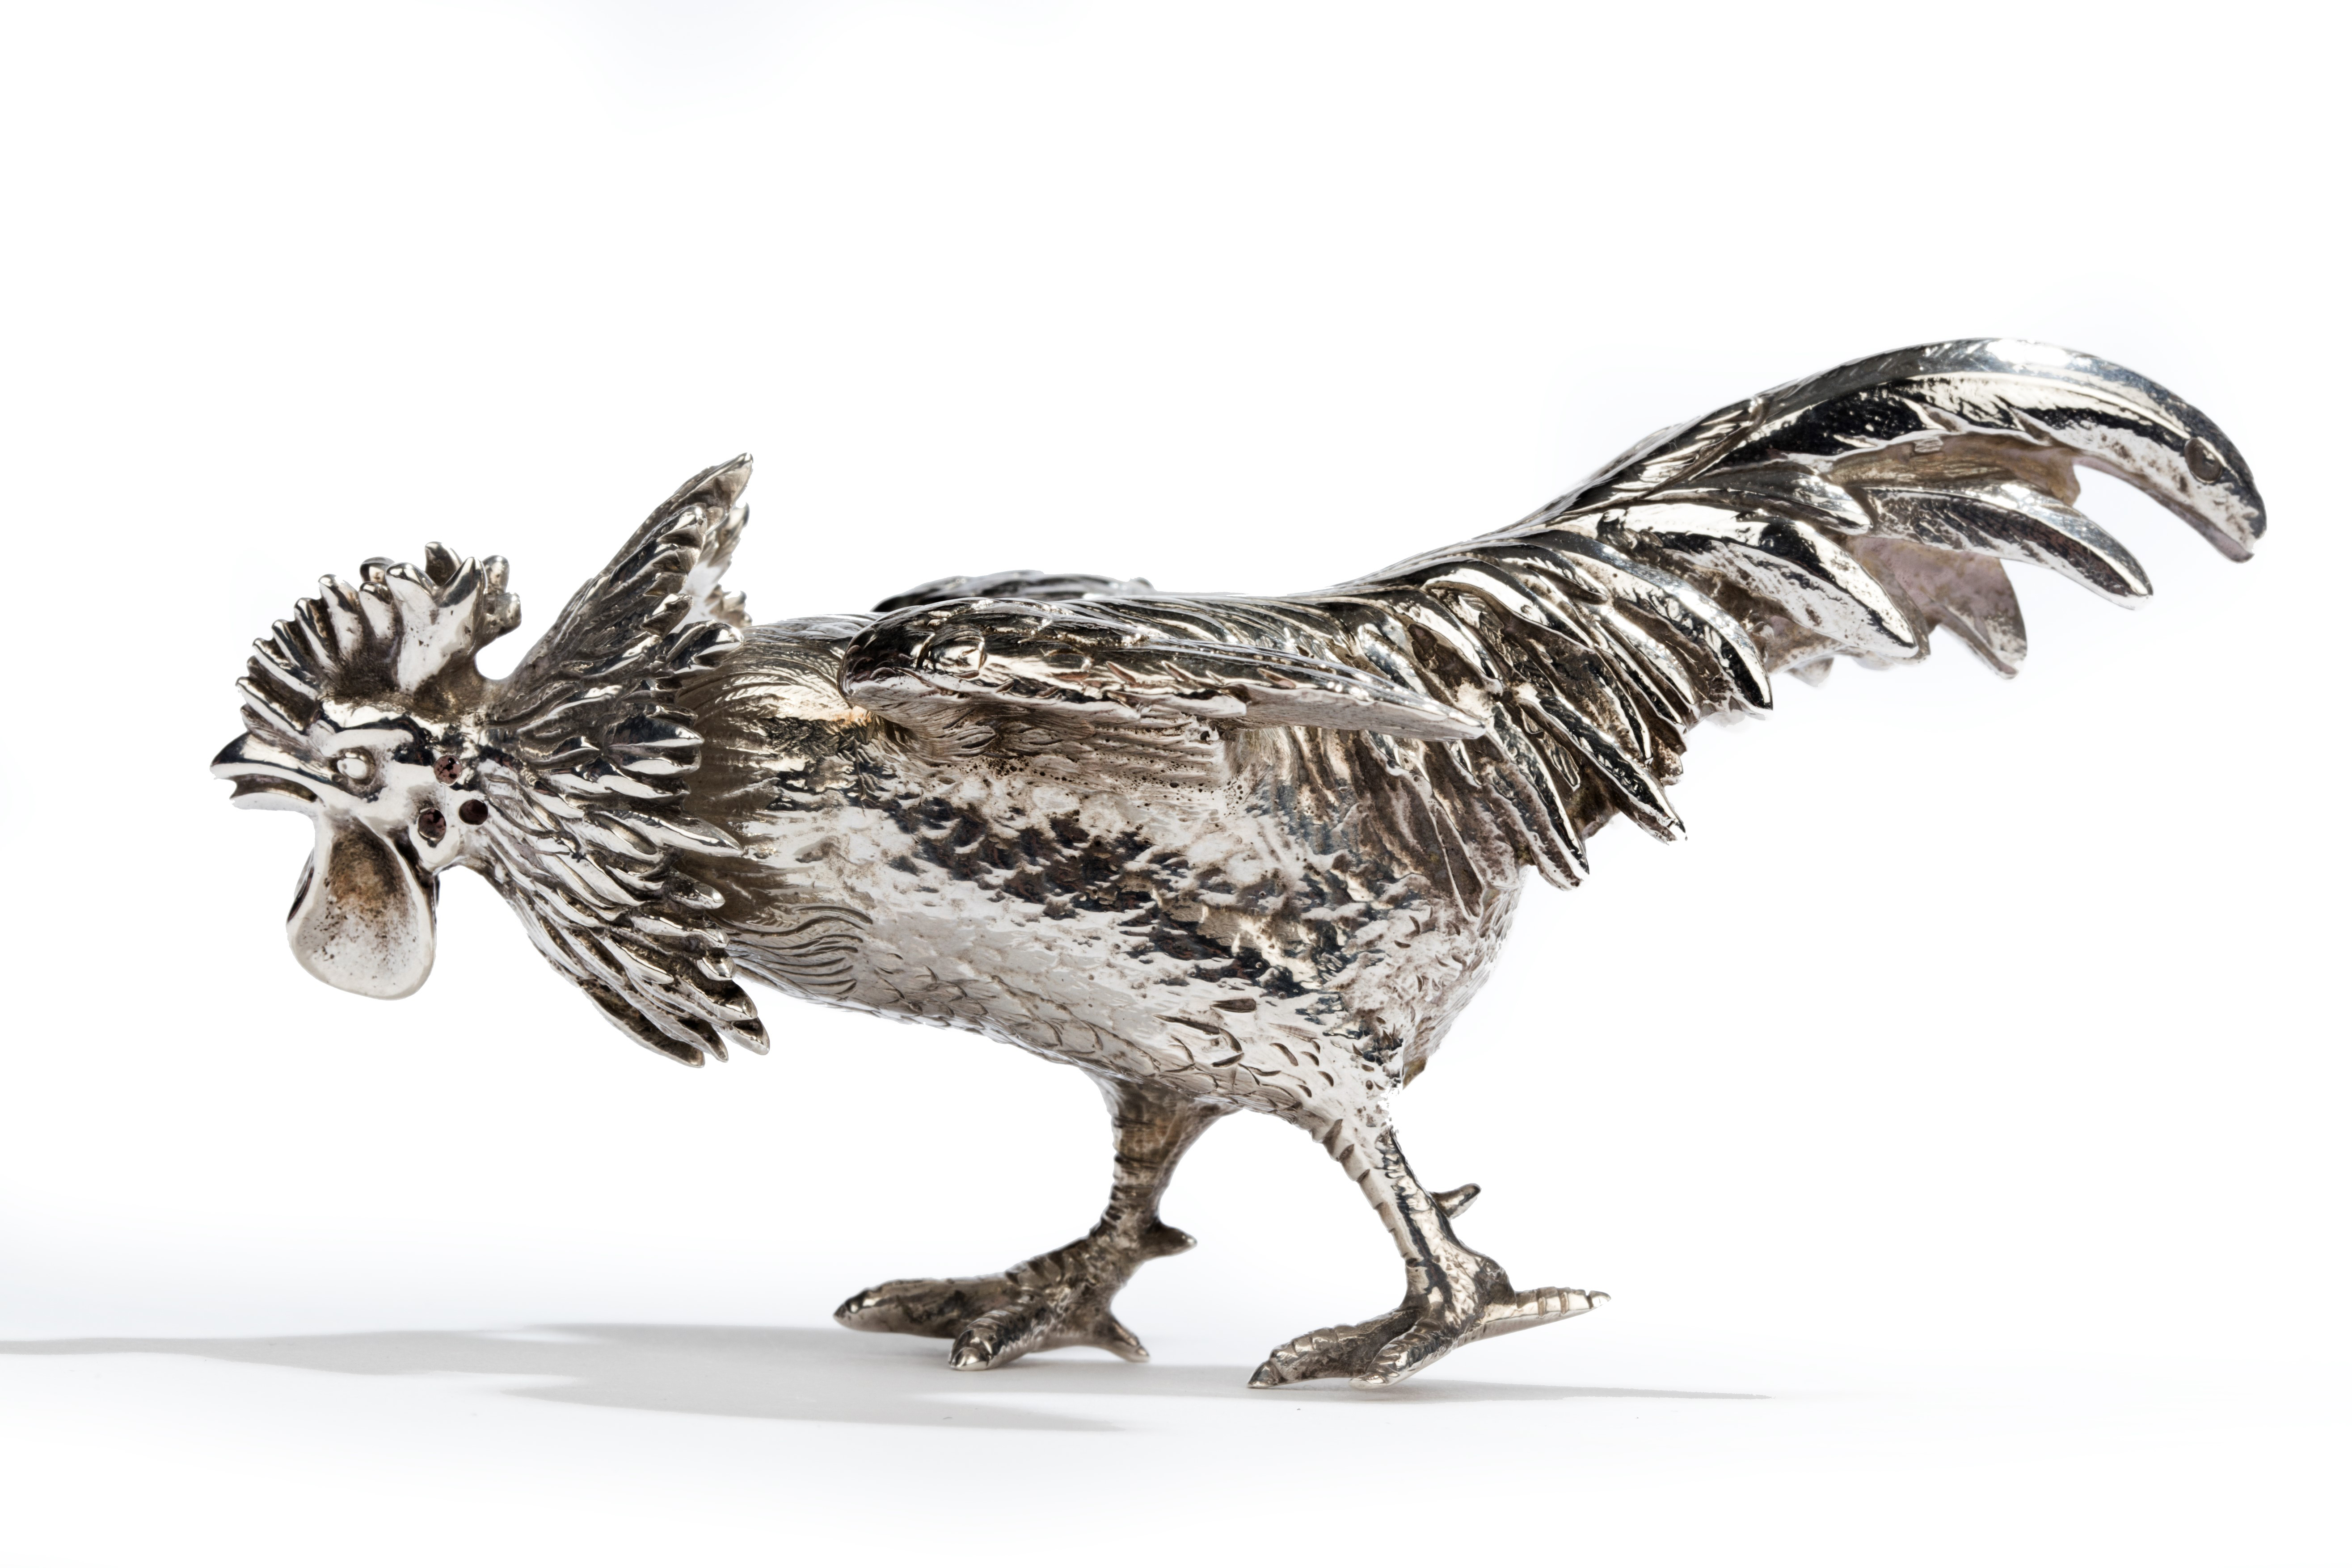 JH Bourdon-Smith Ltd: A silver cockerel by William Thornhill, London, 1883, £1,850.